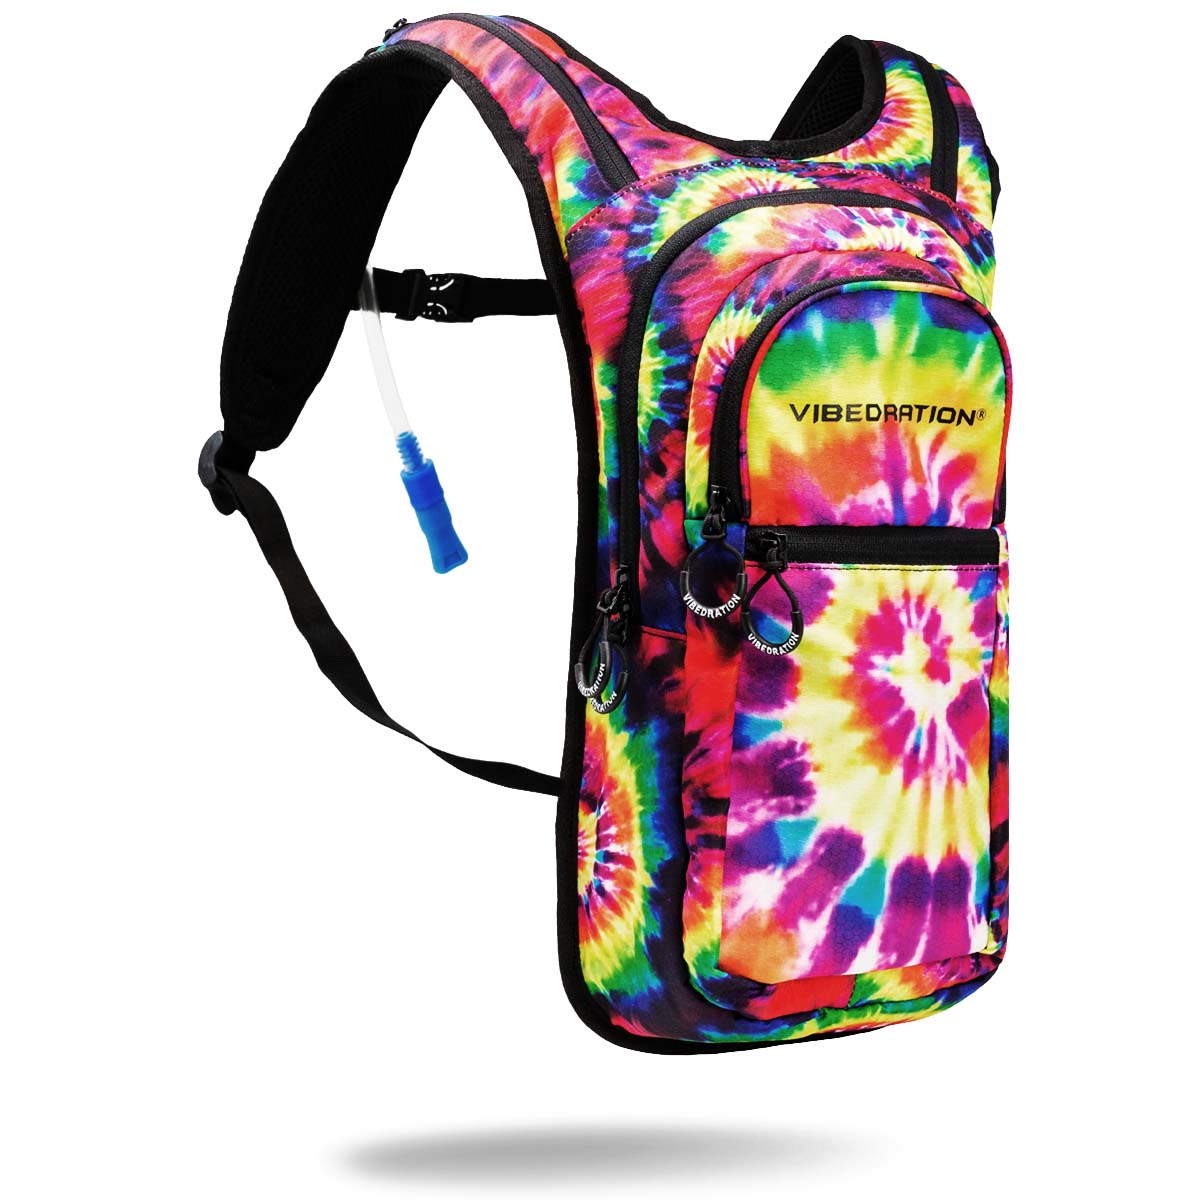 Two Liter Tie Dye Printed Hydration Backpack for festivals